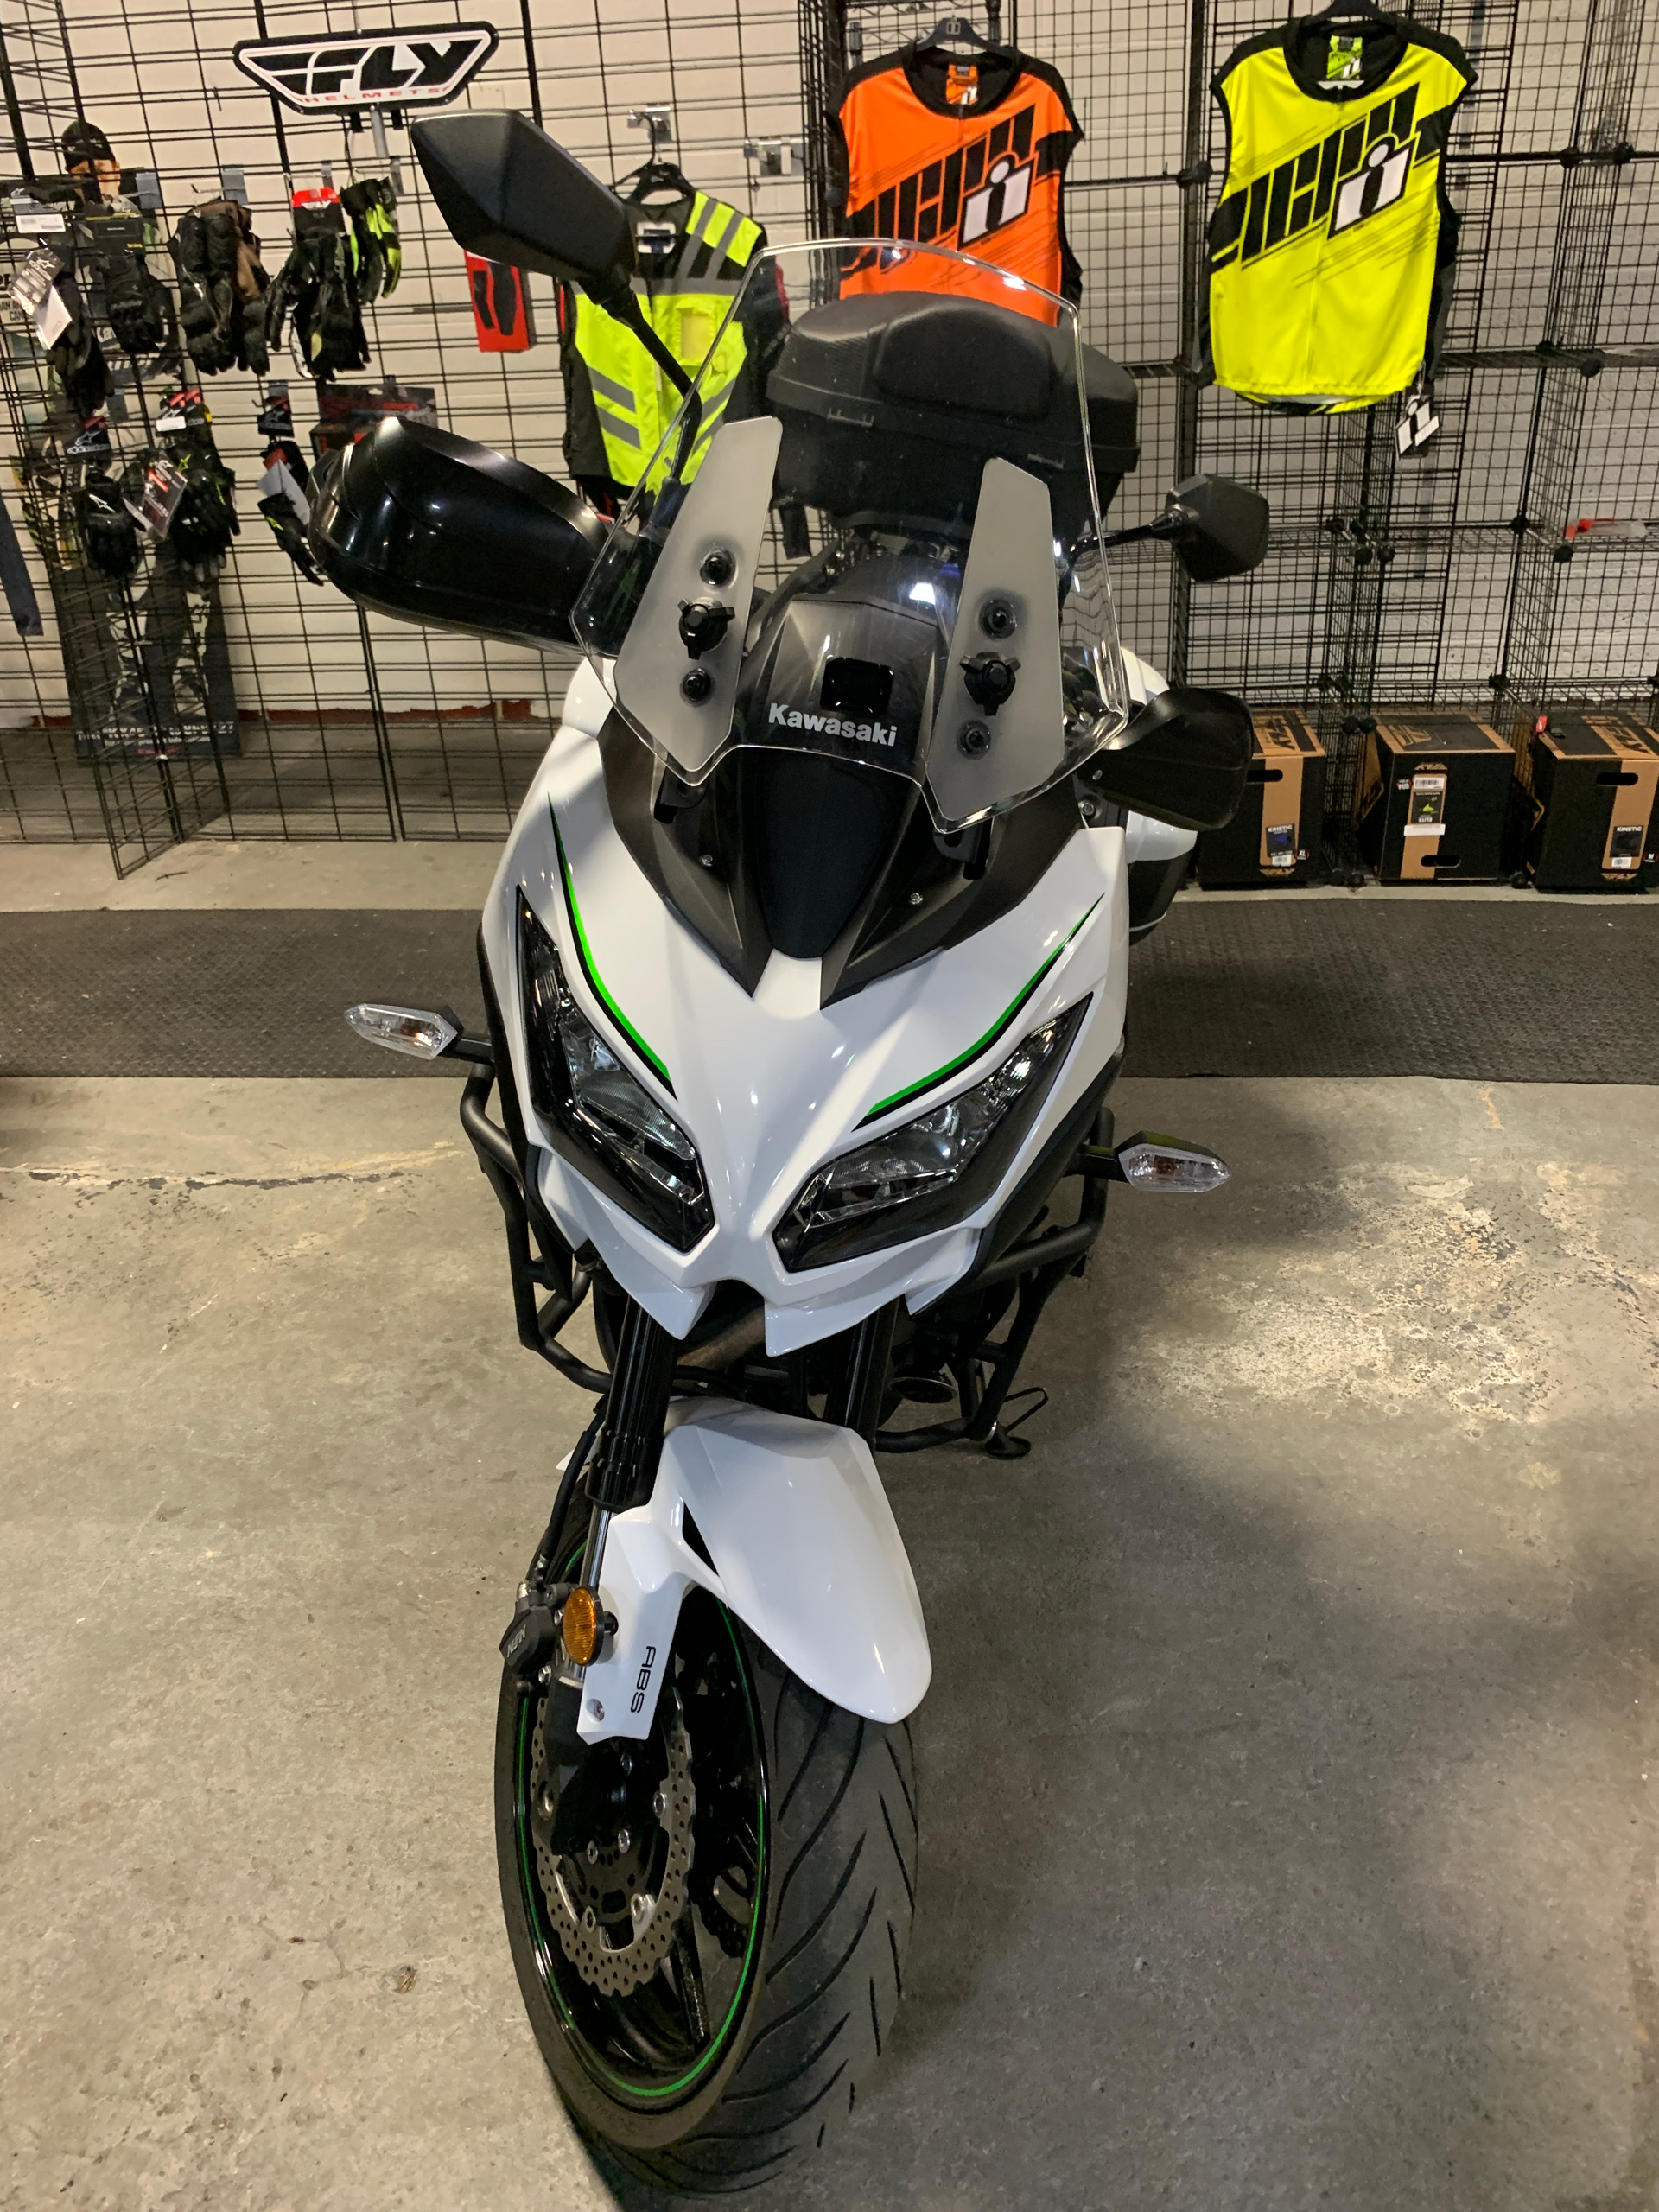 2018 Kawasaki Versys 650 LT in Kingsport, Tennessee - Photo 4